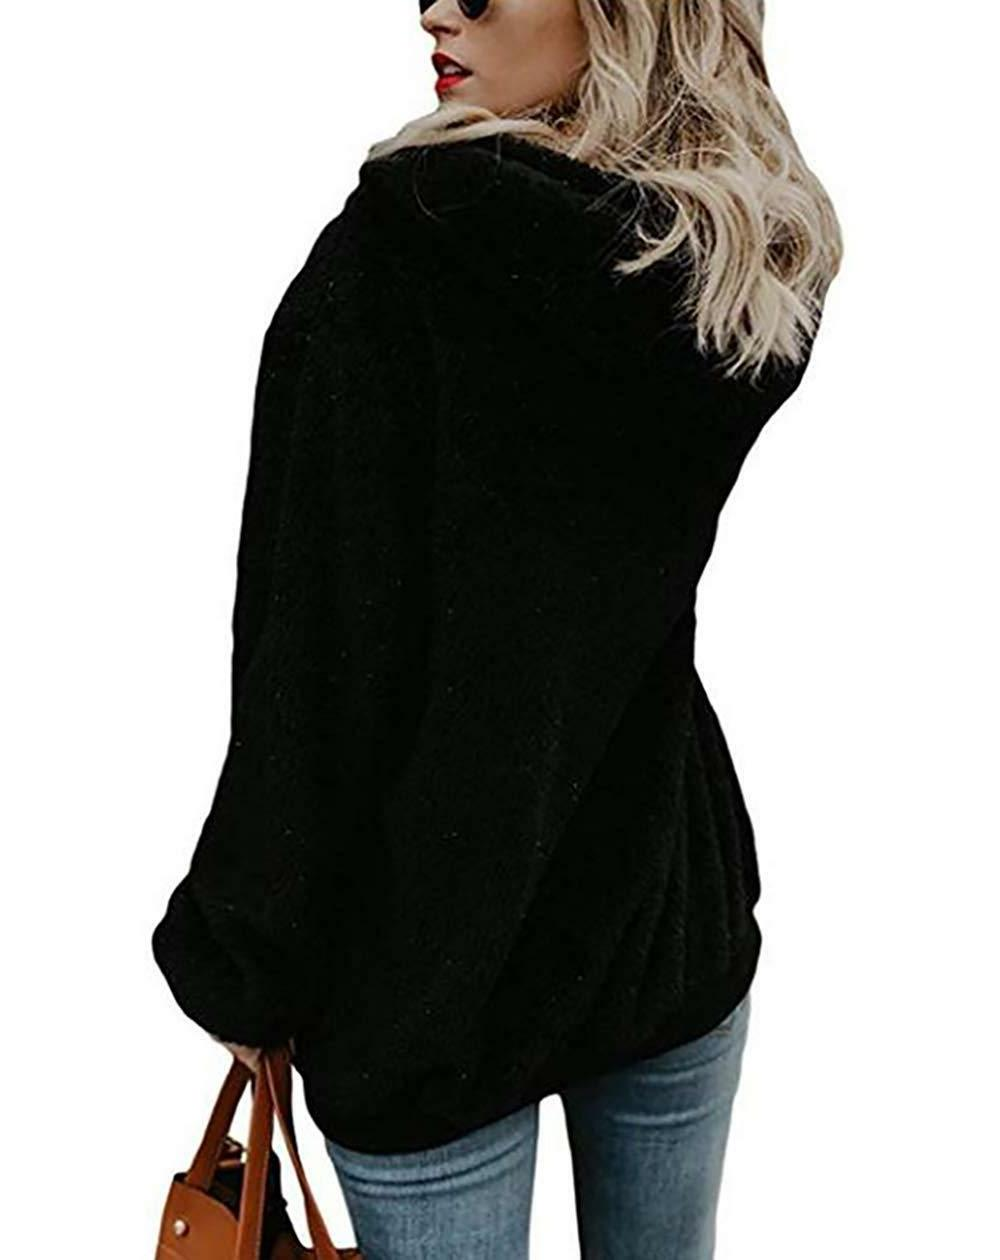 PRETTYGARDEN Winter Fleece Coat Oversized Hooded Pullover